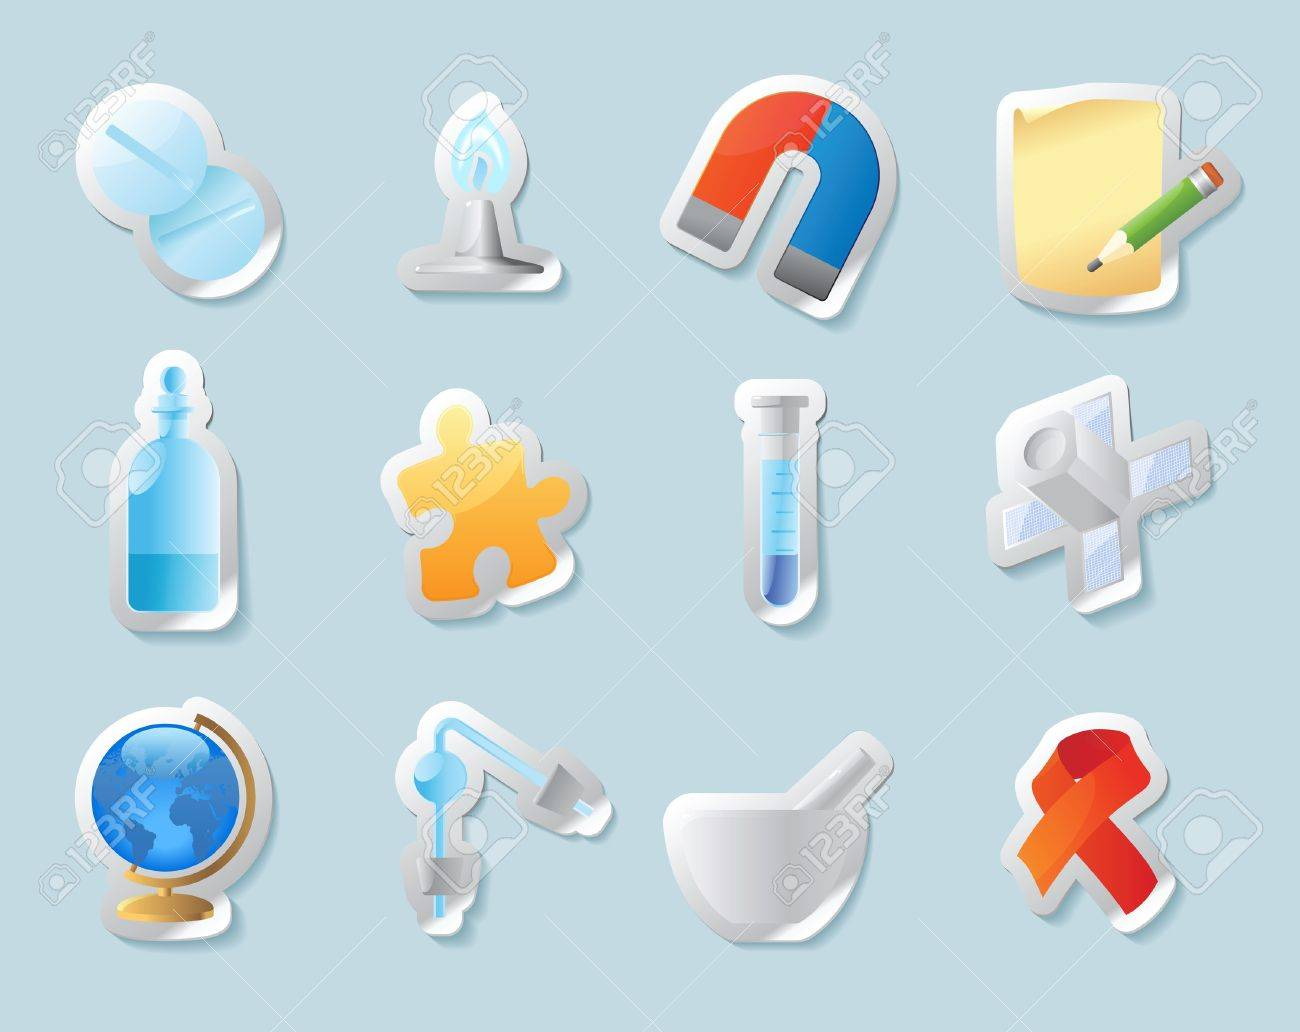 Sticker button set. Icons for science, medicine and education. Vector illustration. Stock Vector - 11106445